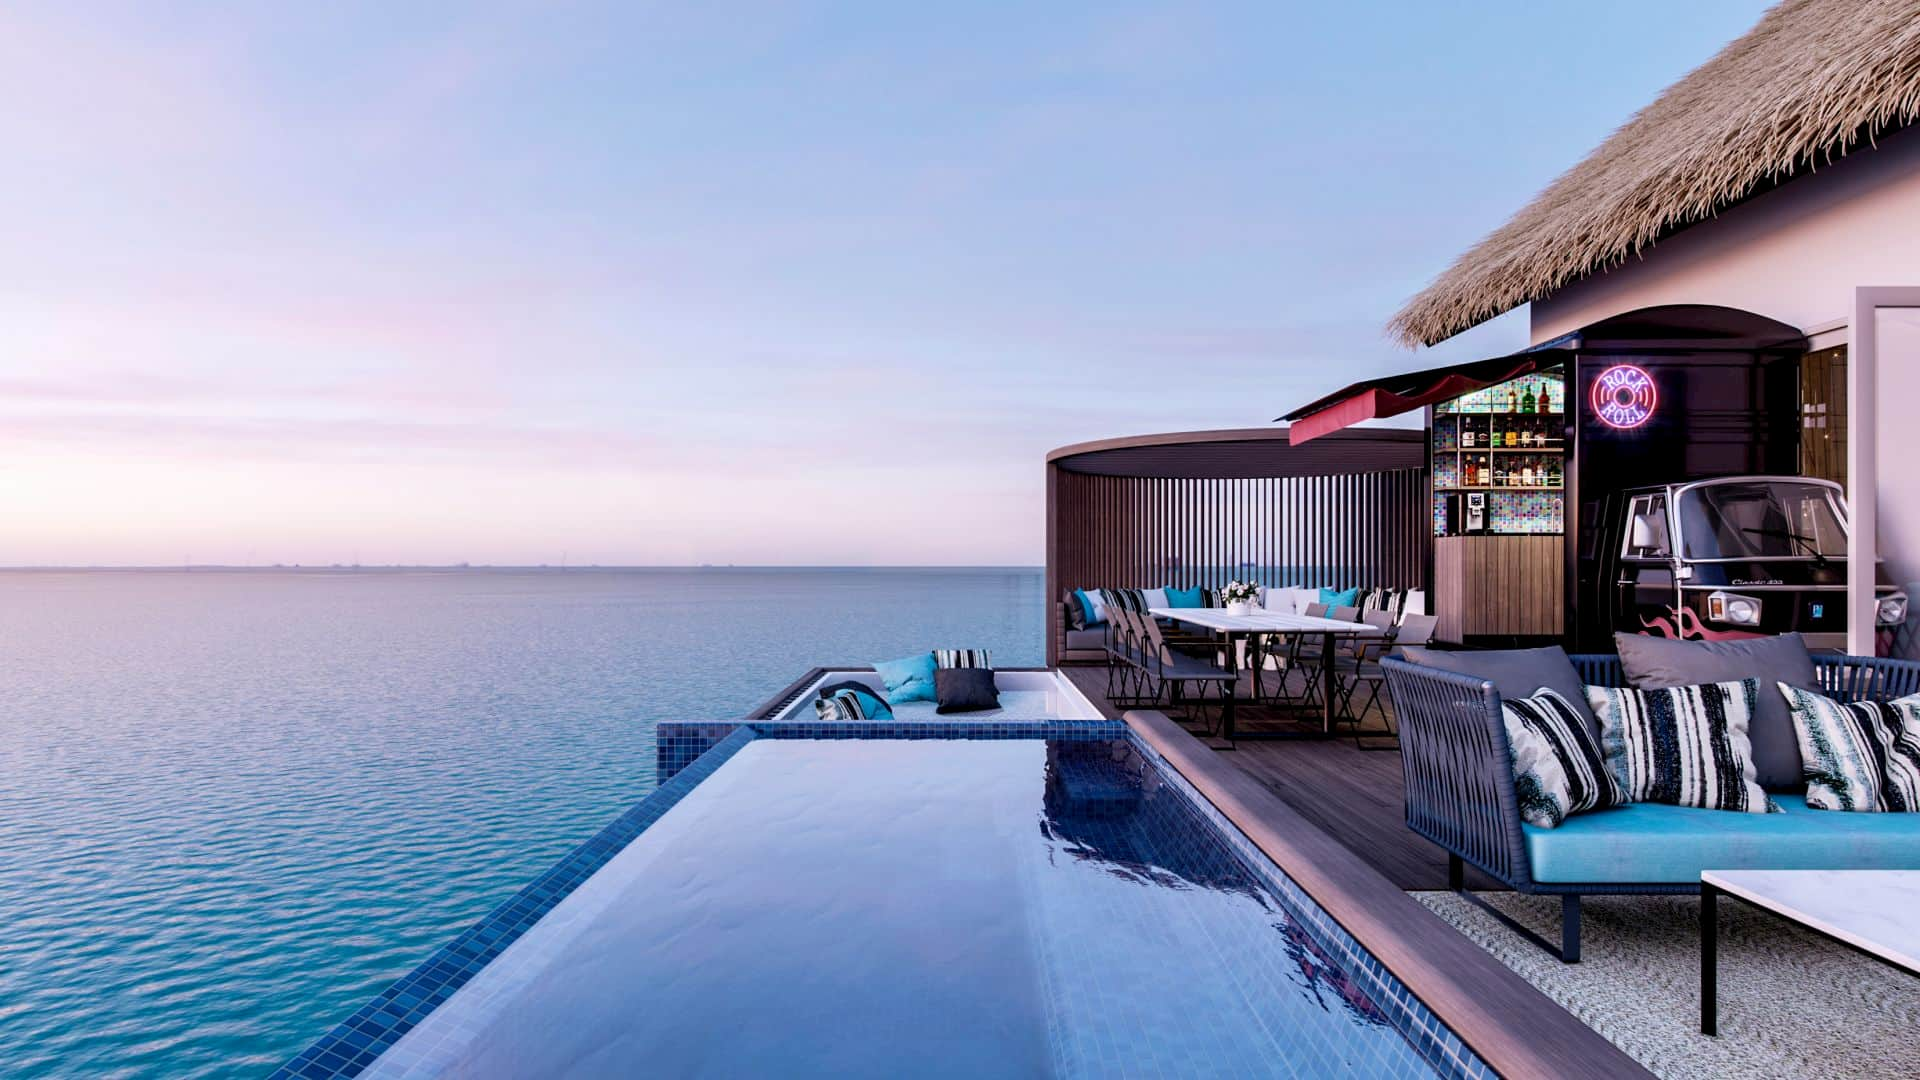 Resort Maldive Hard Rock rocky star villa